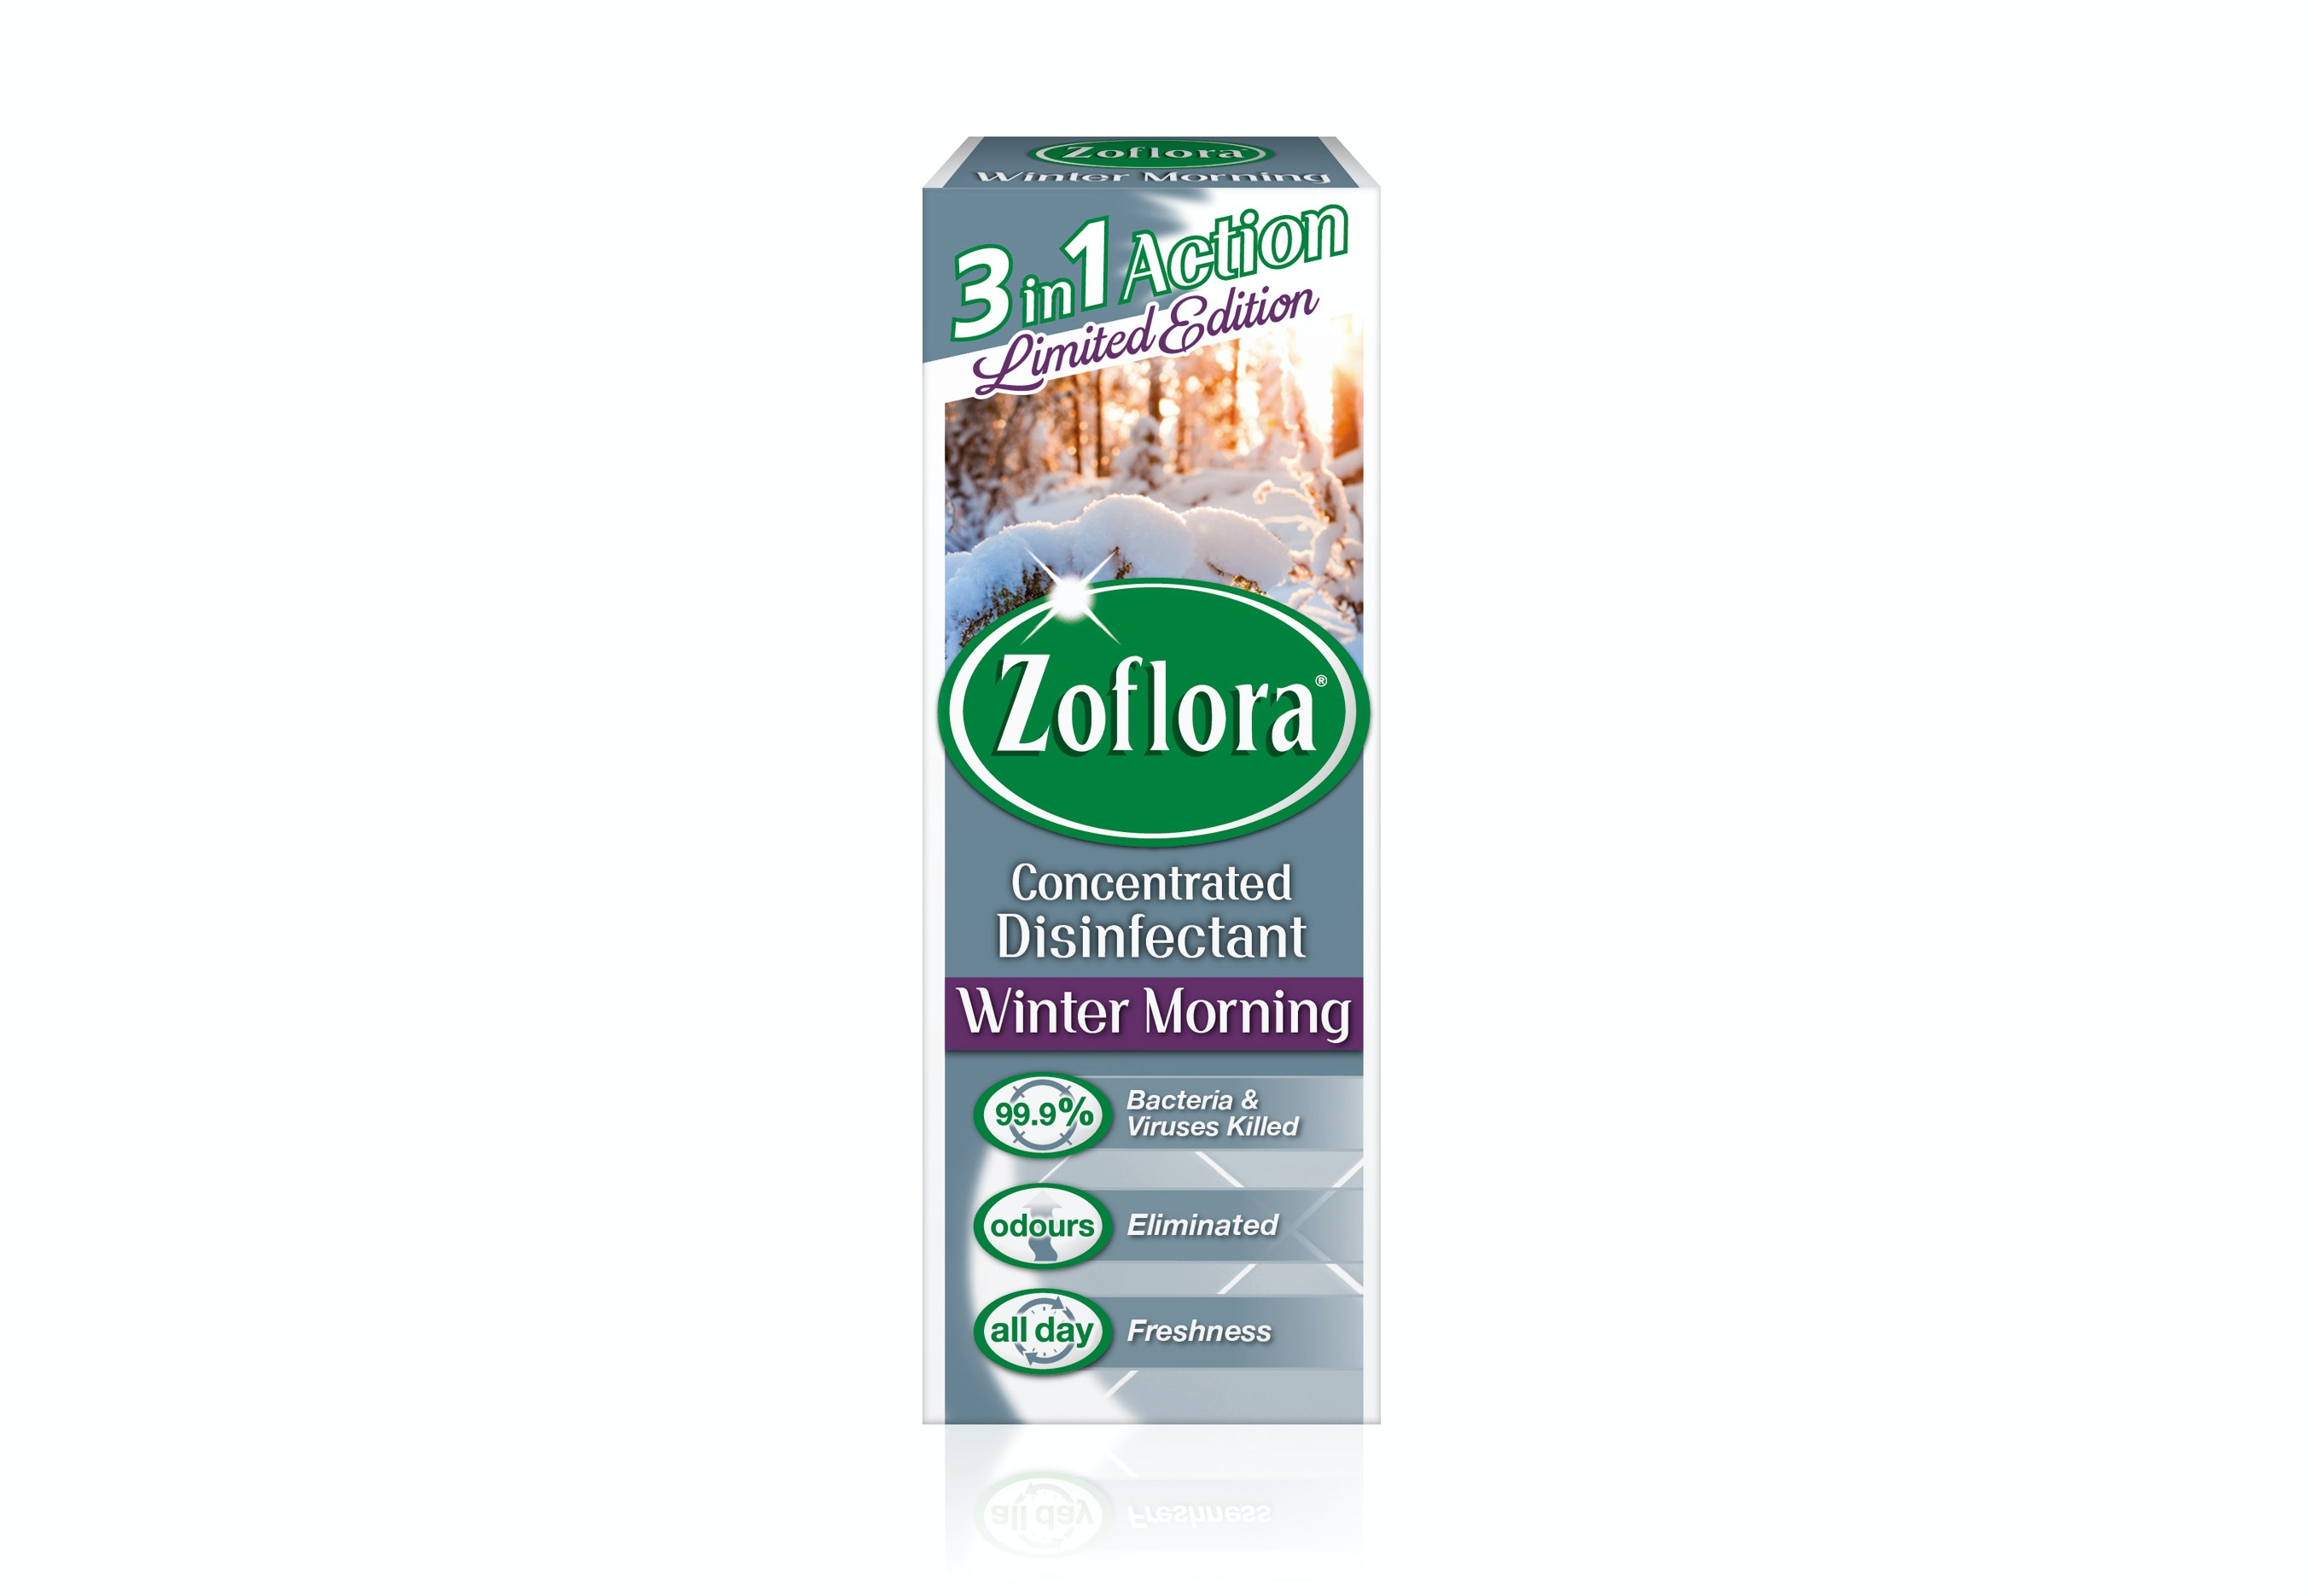 six-month supply of Zoflora sweepstakes